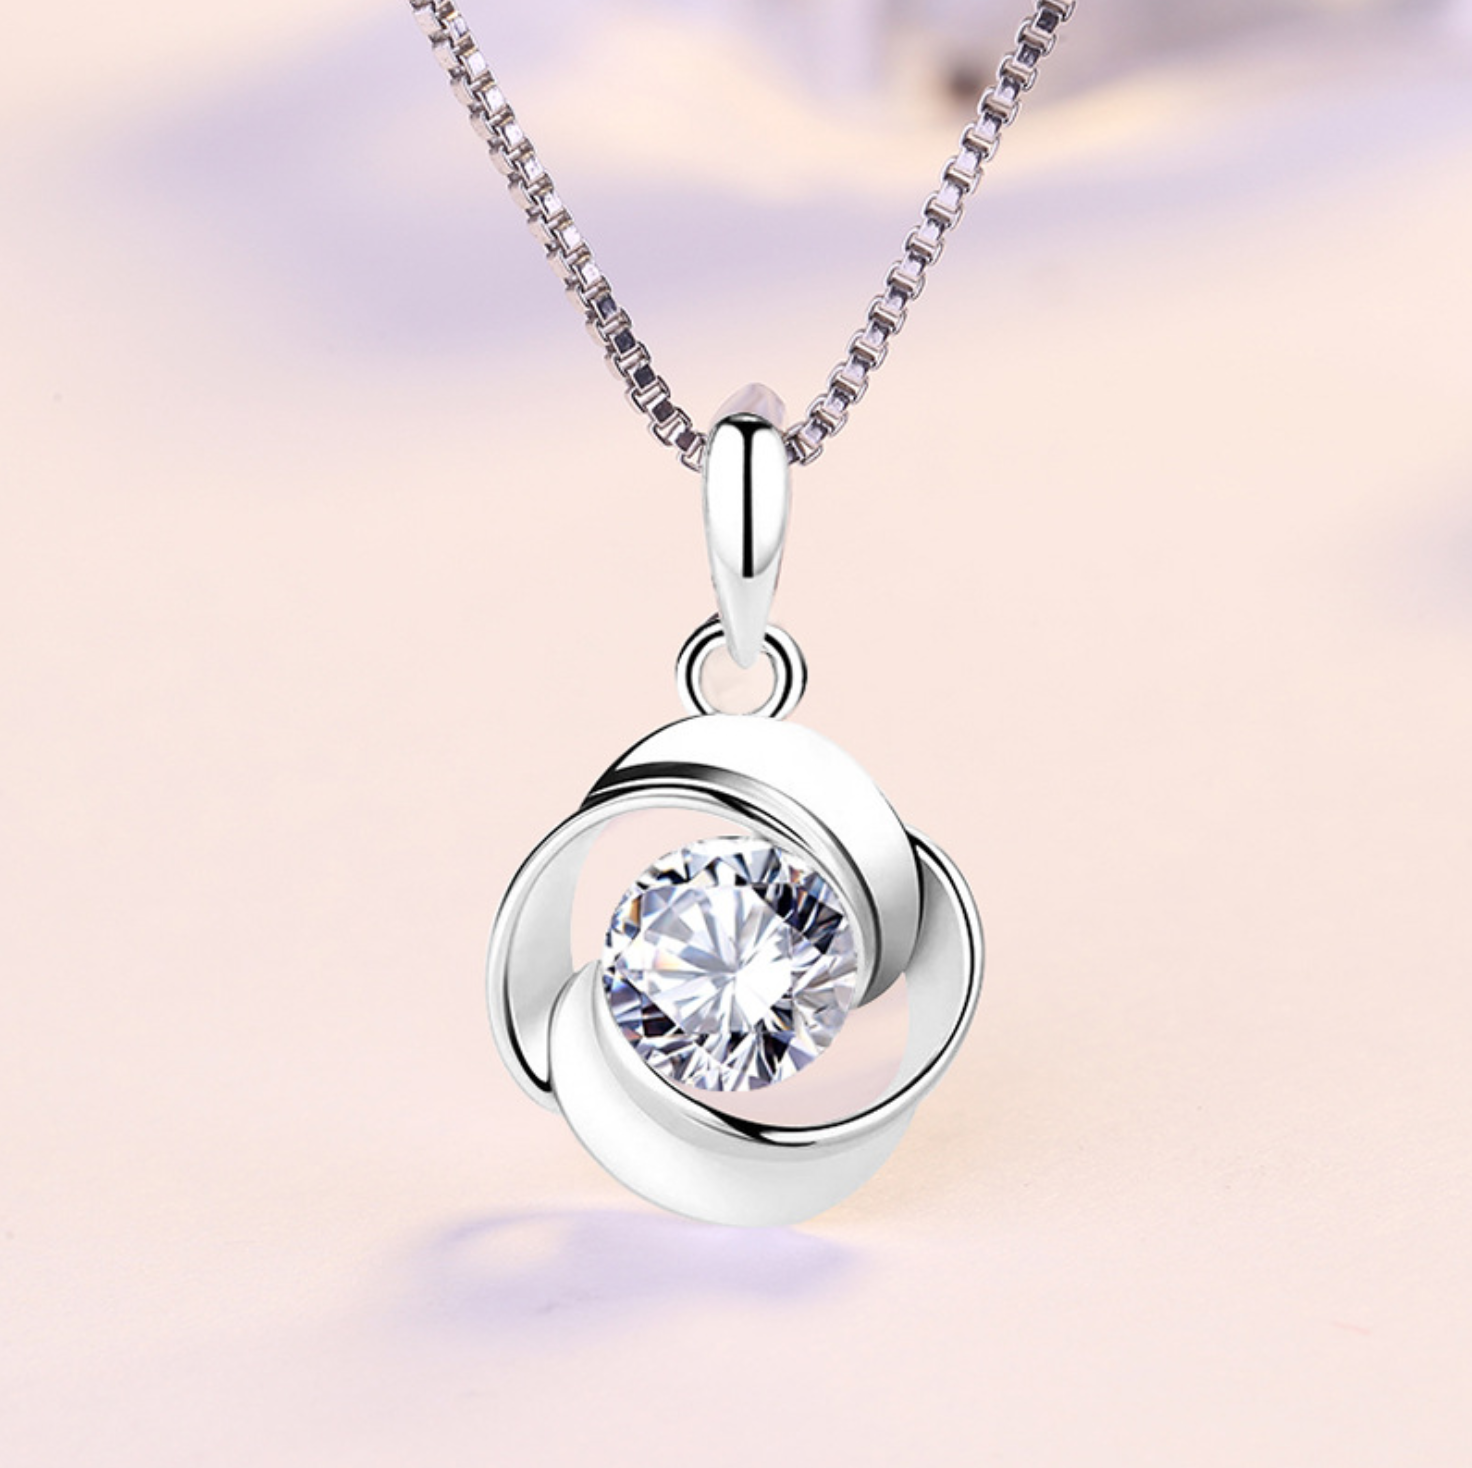 Jewellery - Swirl Stone Twisted 925 Sterling Silver Pendant Chain Necklace Womens Jewellery